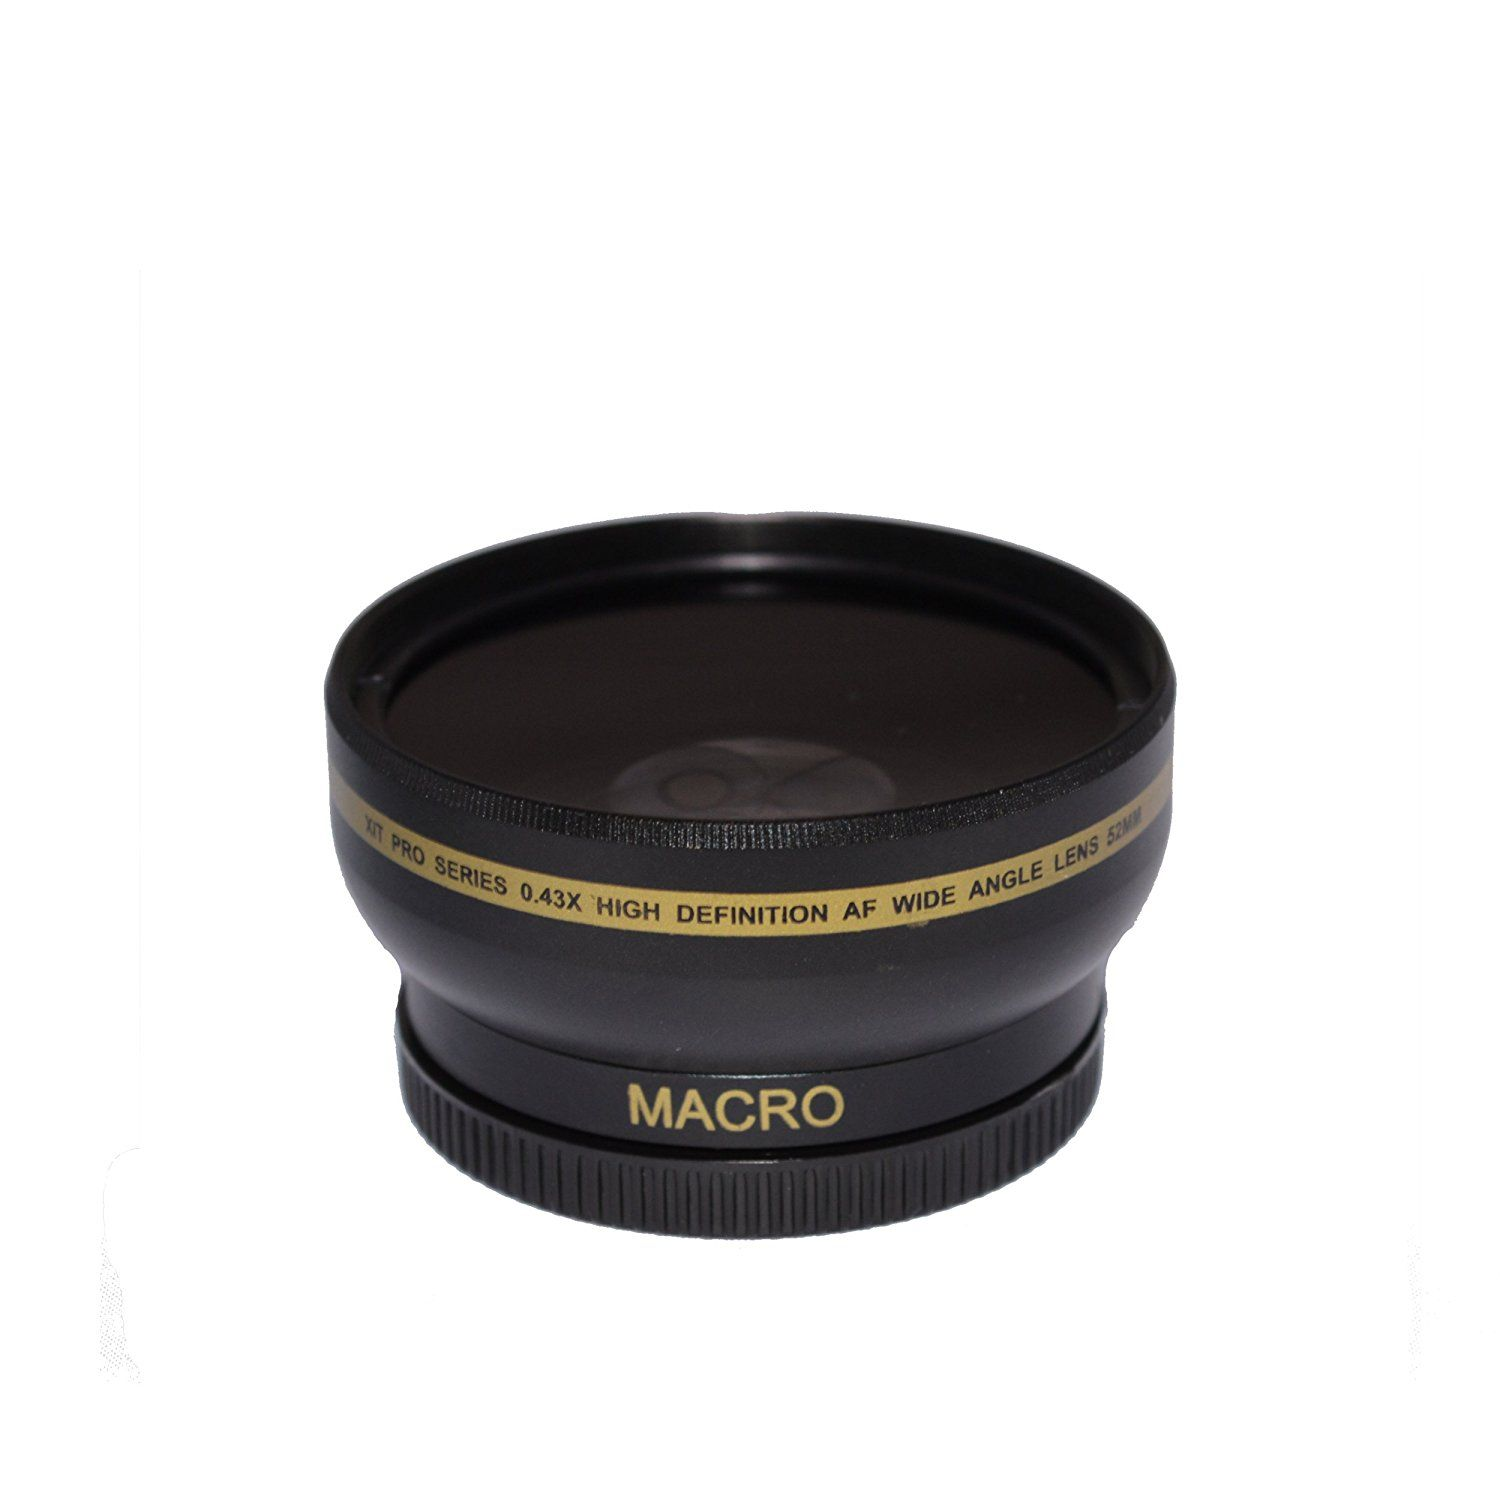 52mm High Definition Wide Angle Macro Lens For Pentax Smc DA 18 55mm F35 56 AL WR 043x Ultra Converter 52 Mm Threaded AF Check Out This